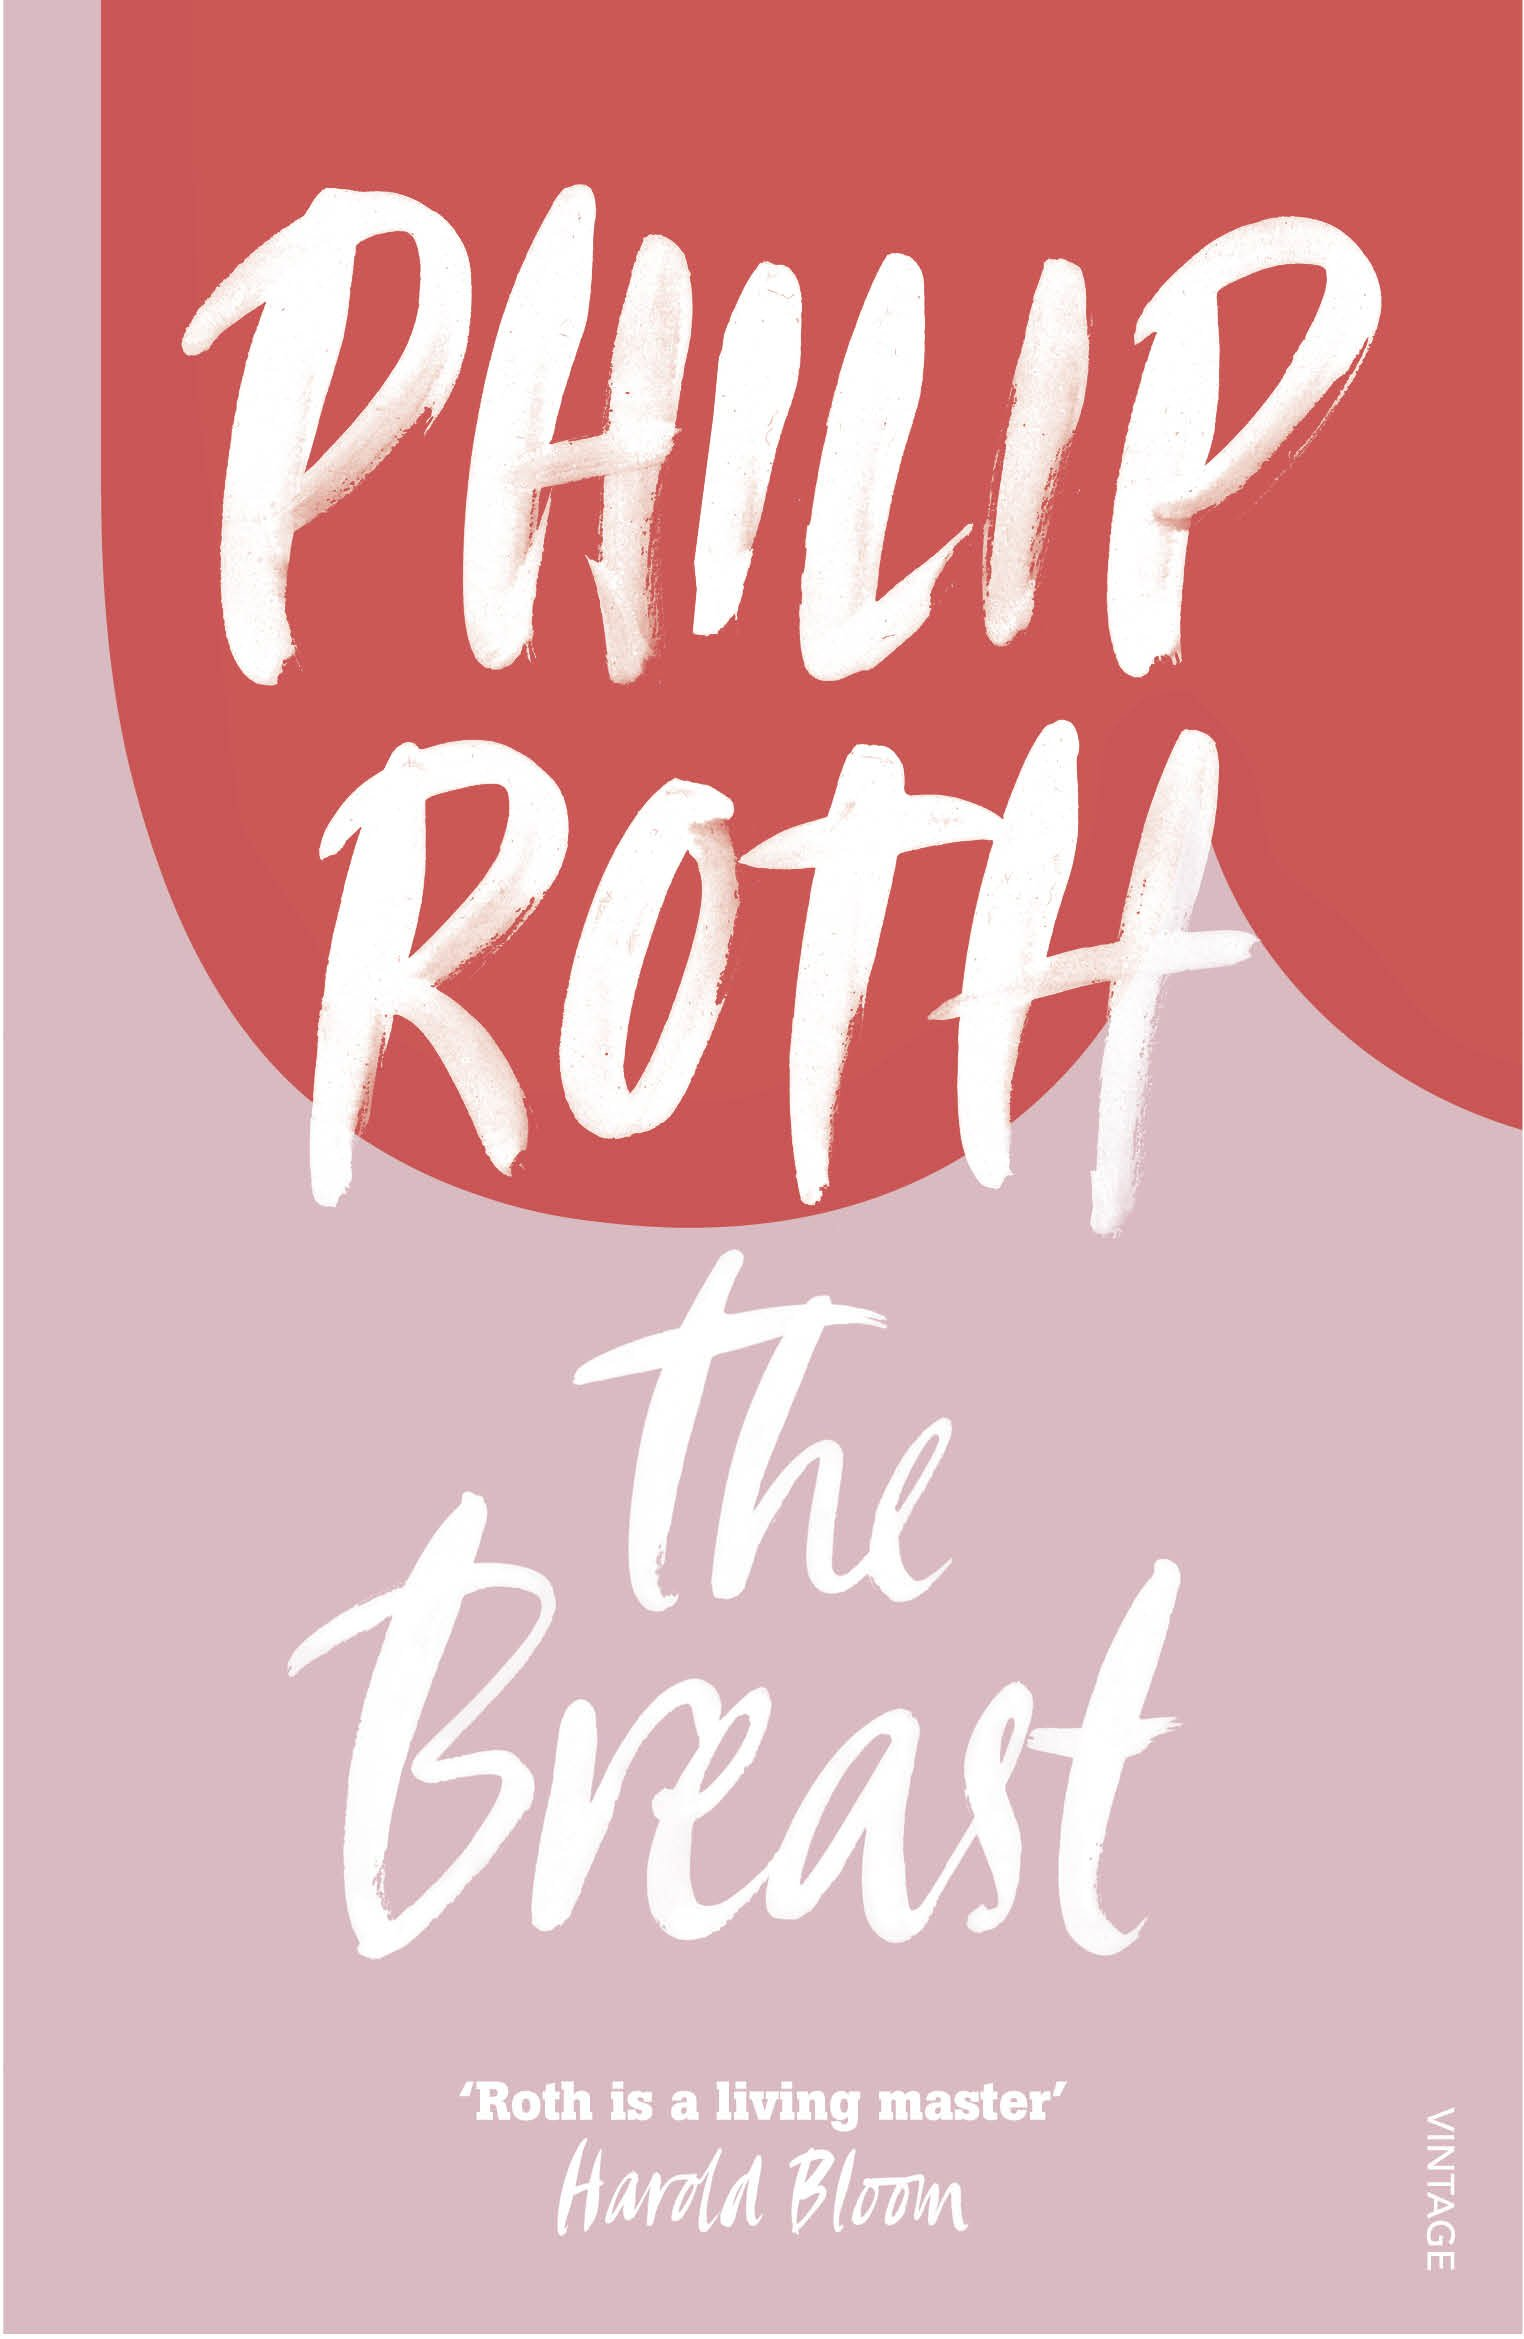 the Phillip breast roth